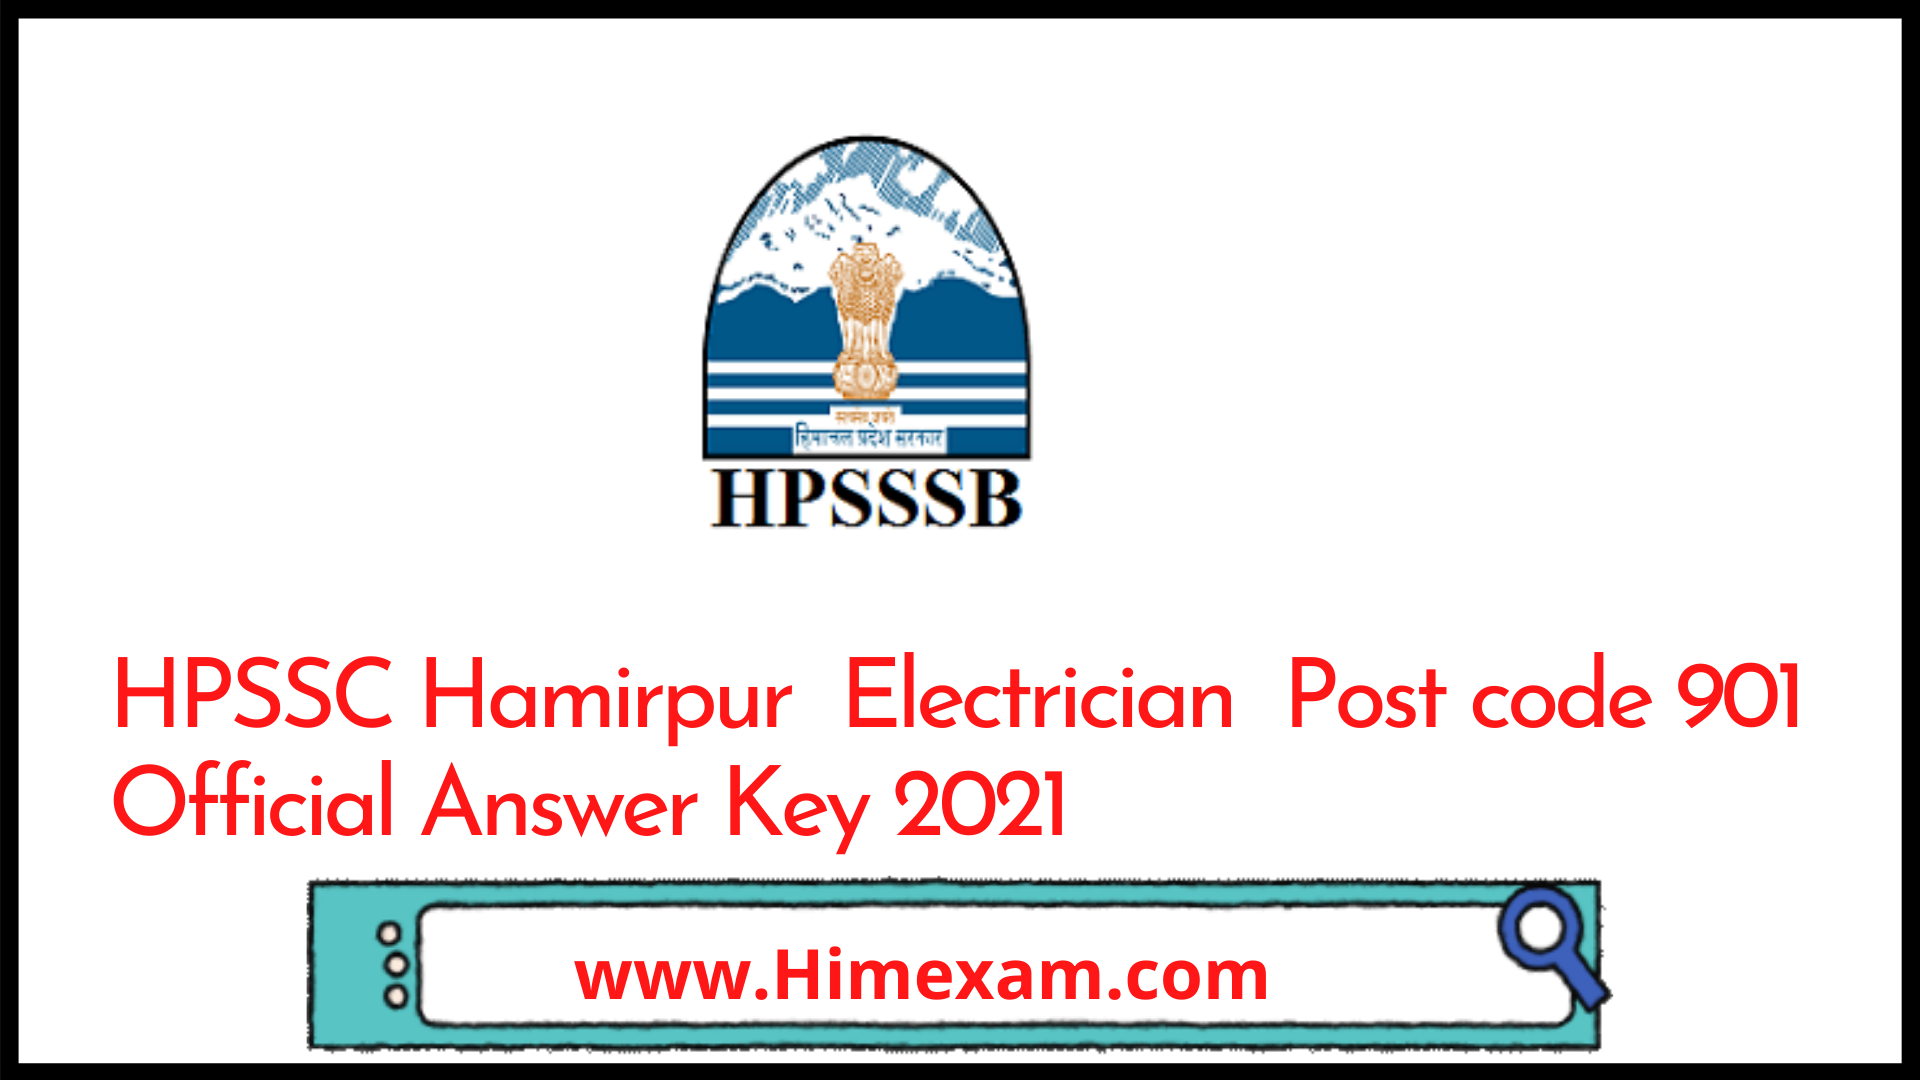 HPSSC Hamirpur  Electrician  Post code 901 Official Answer Key 2021